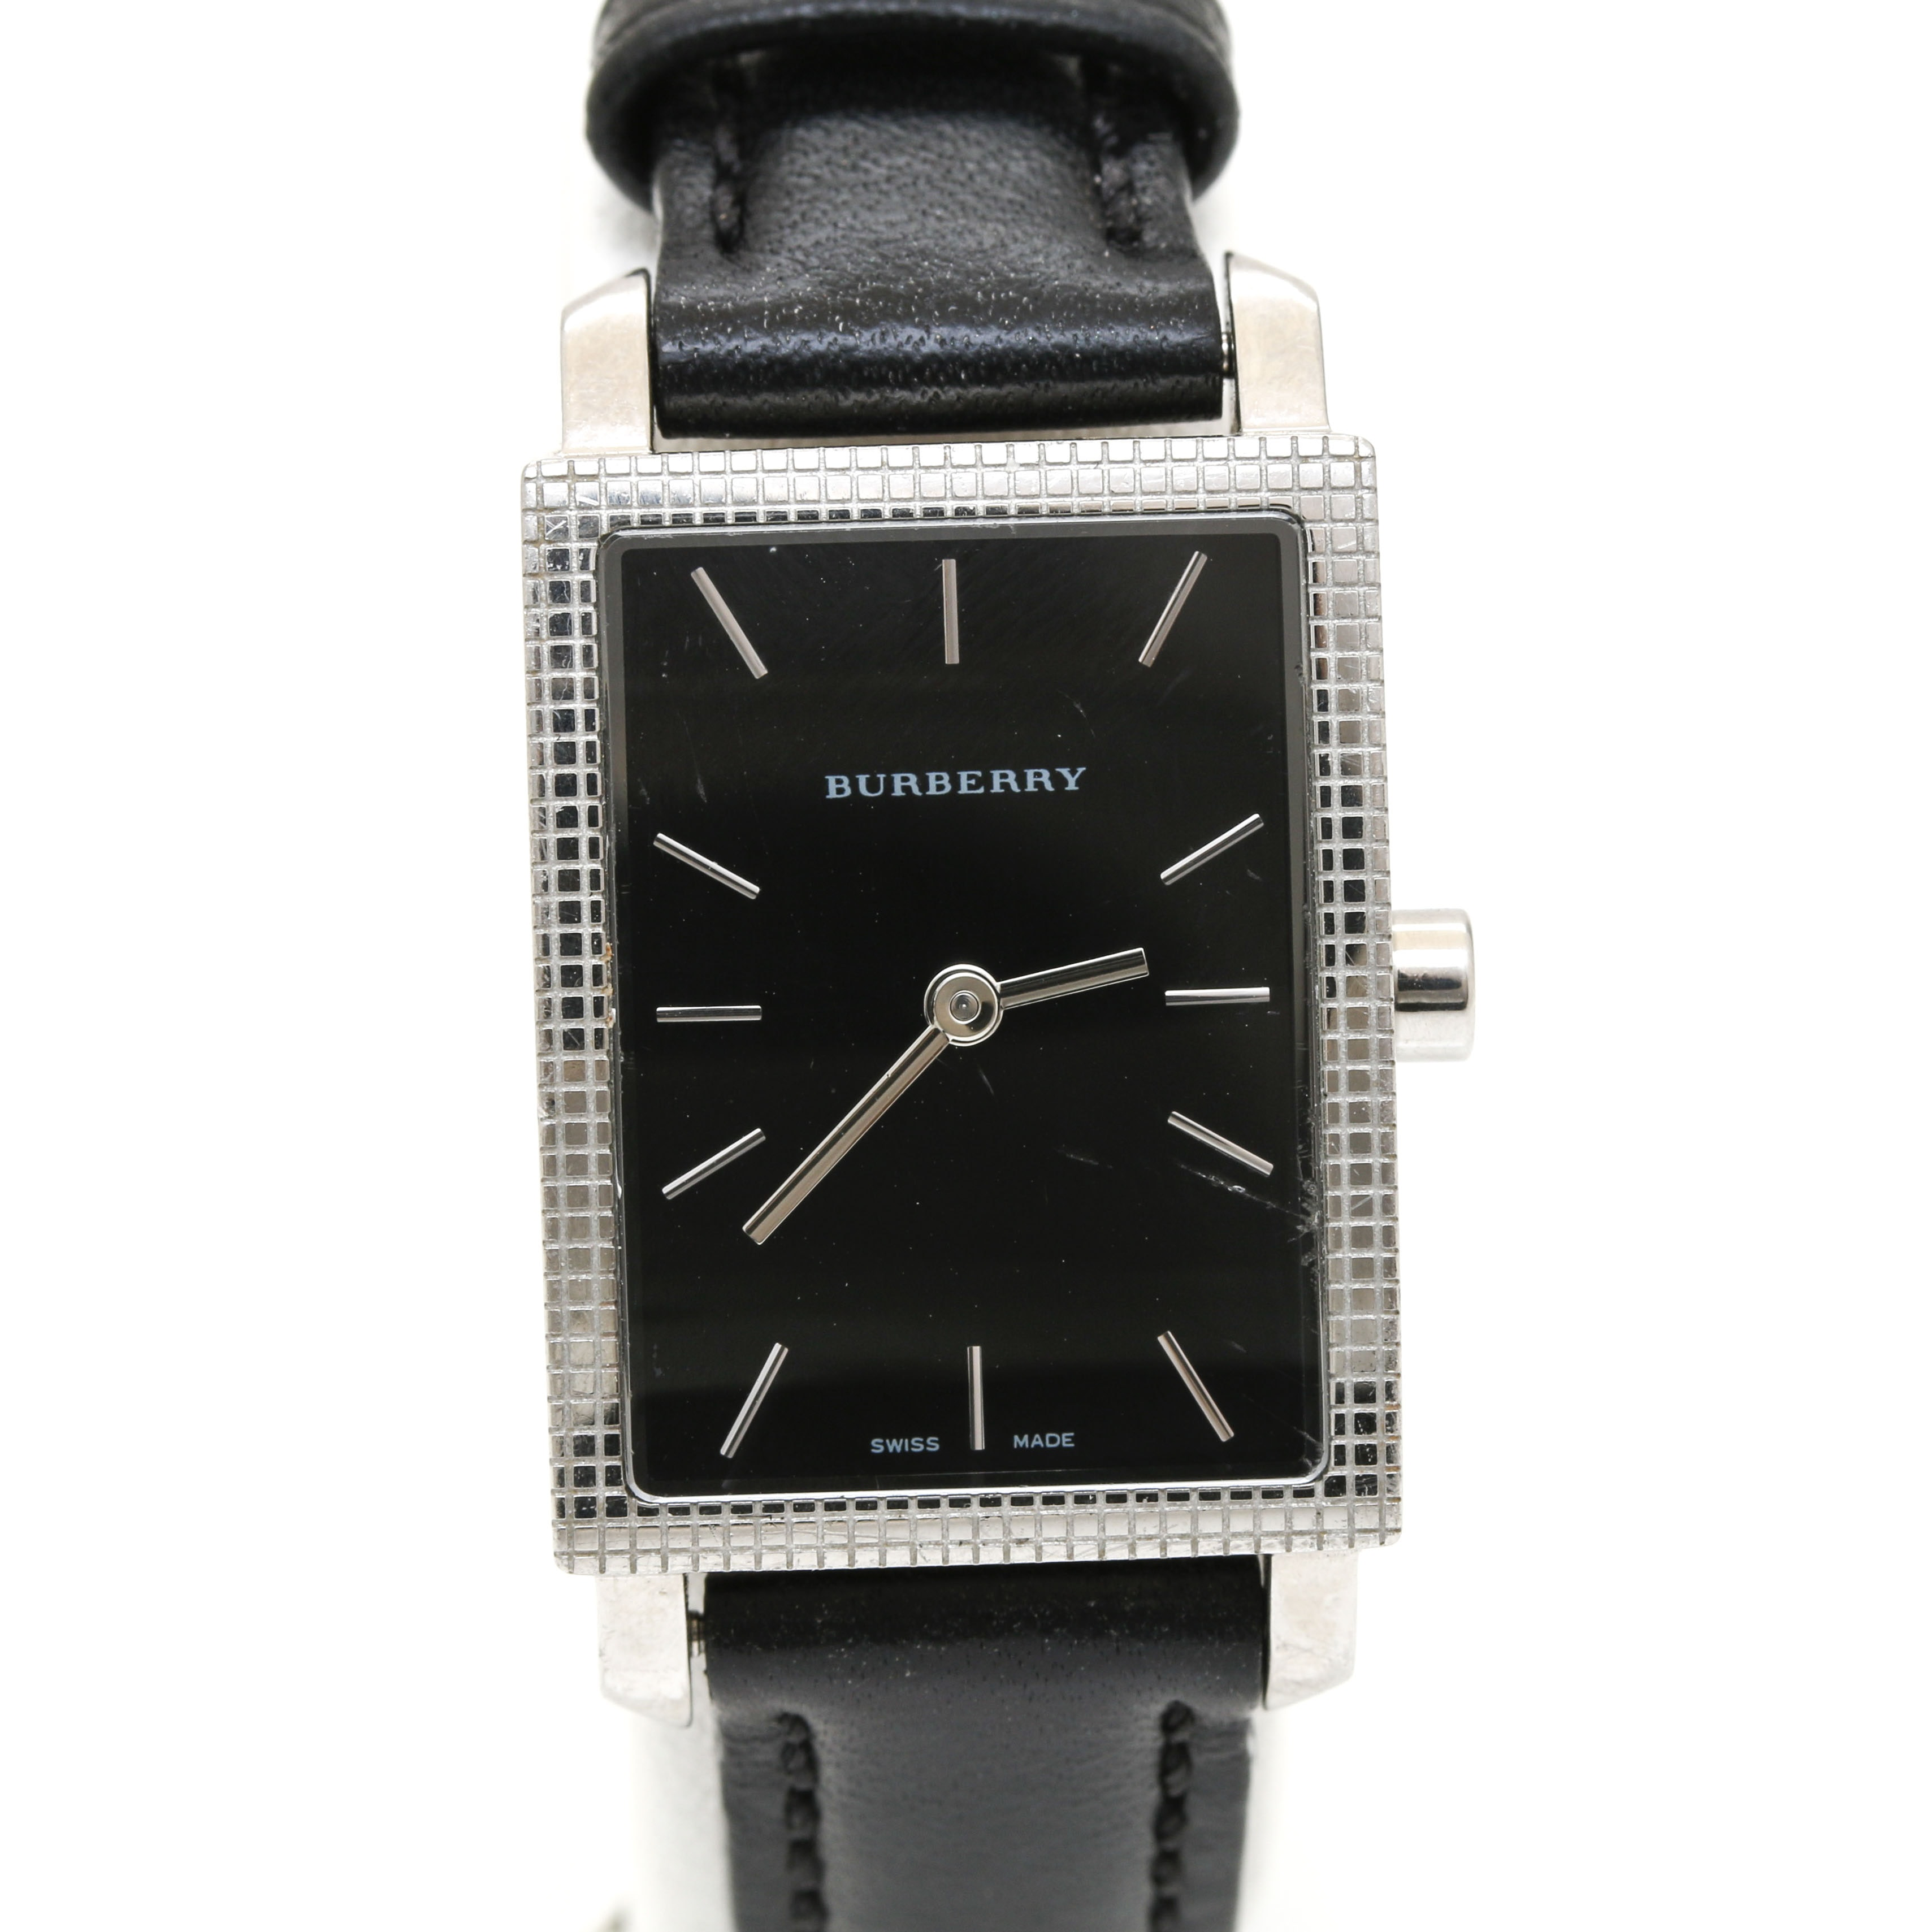 Burberry Stainless Steel and Leather Strap Wristwatch